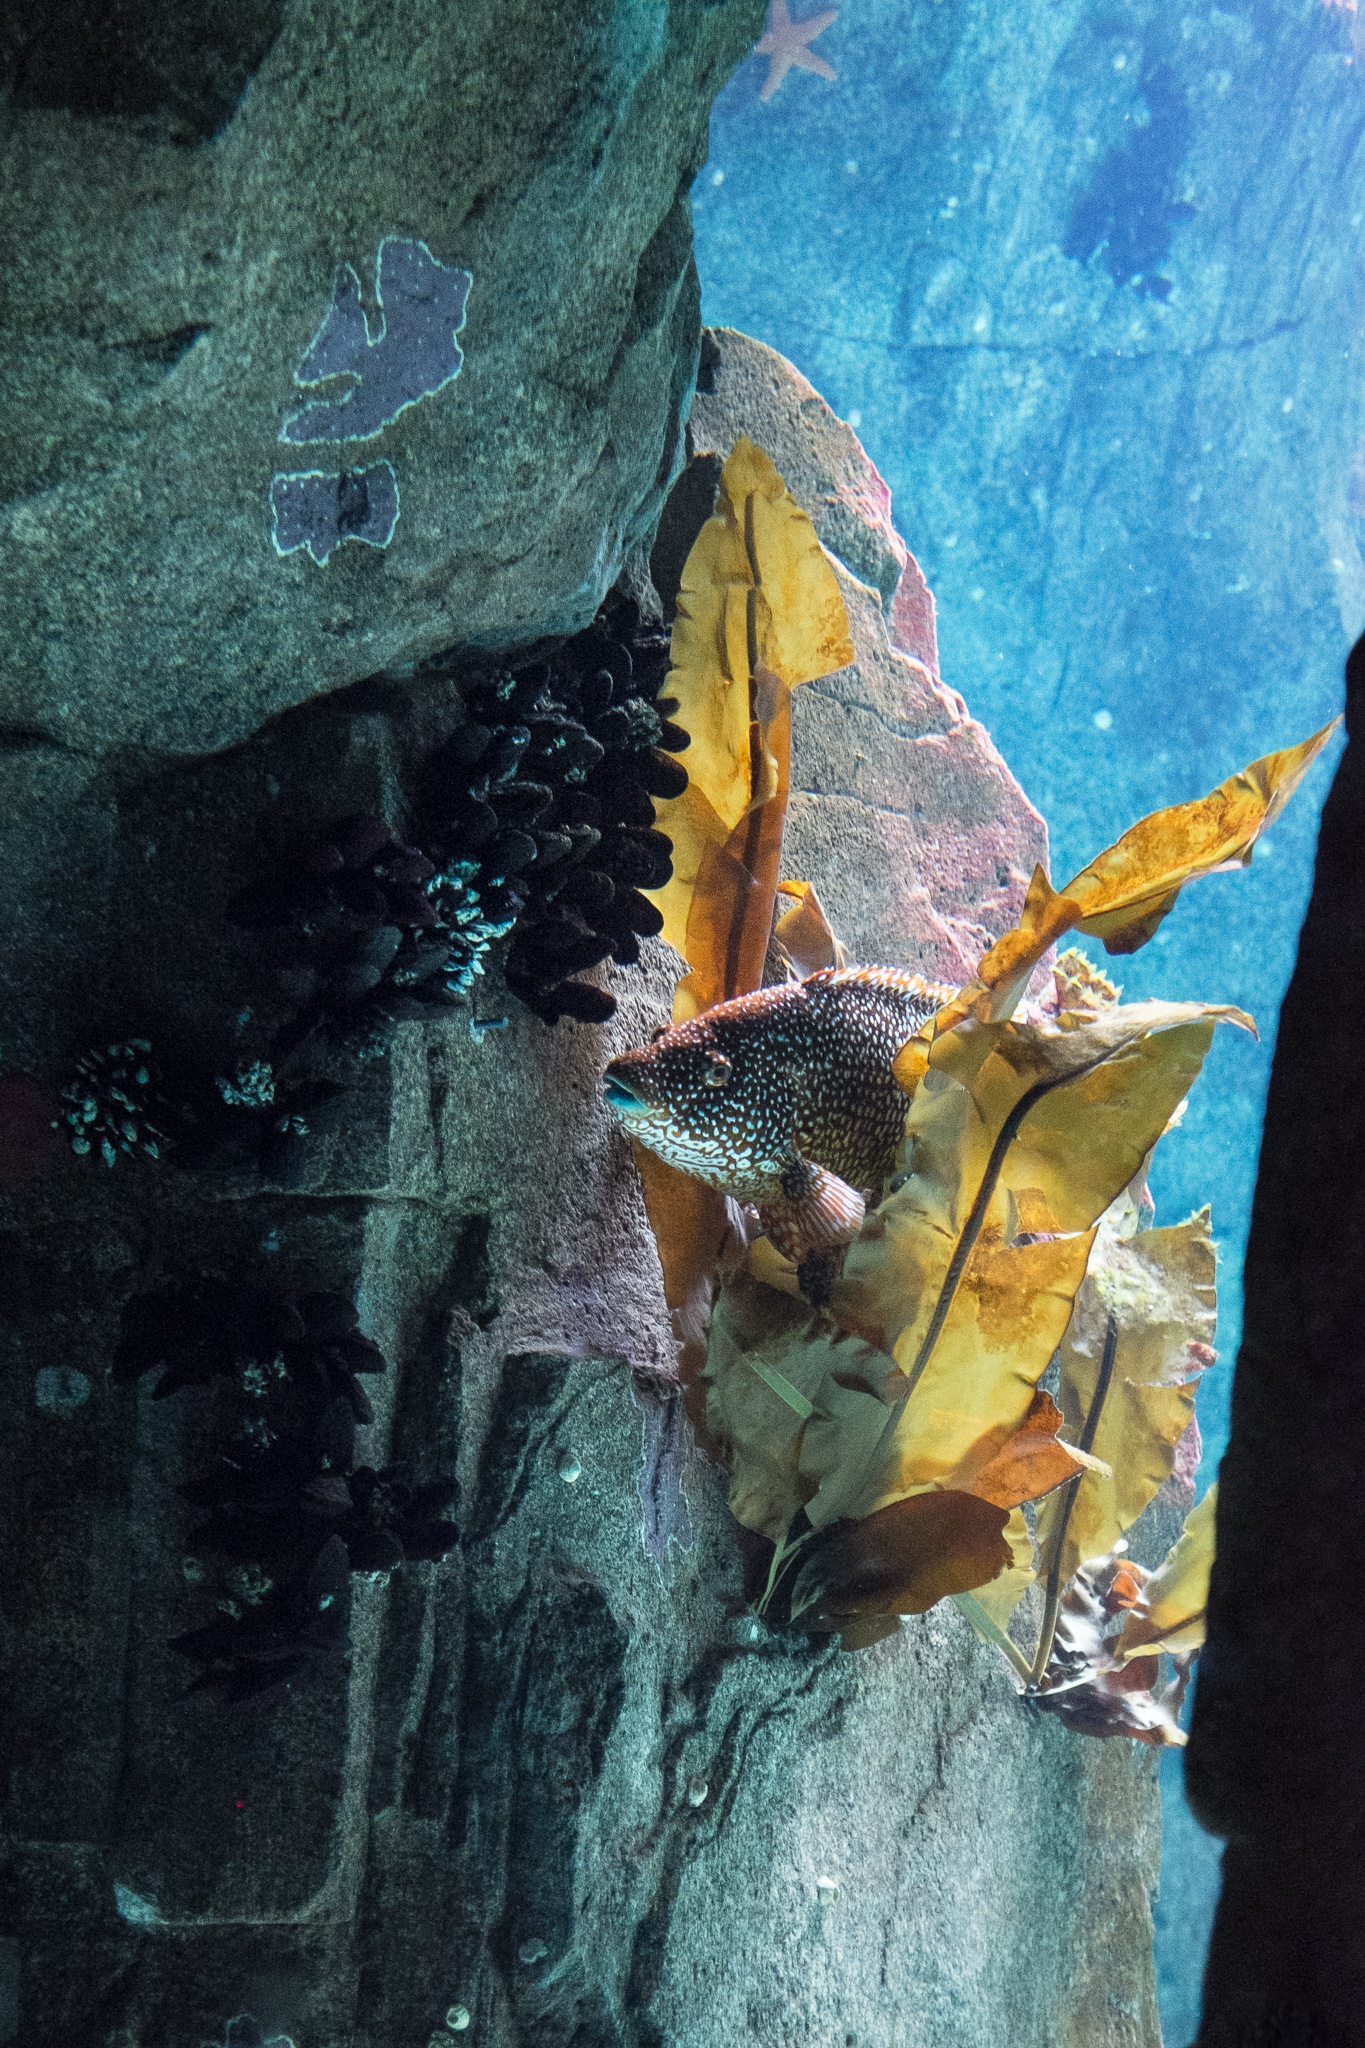 4572-portugal-aquarium-fish.jpg